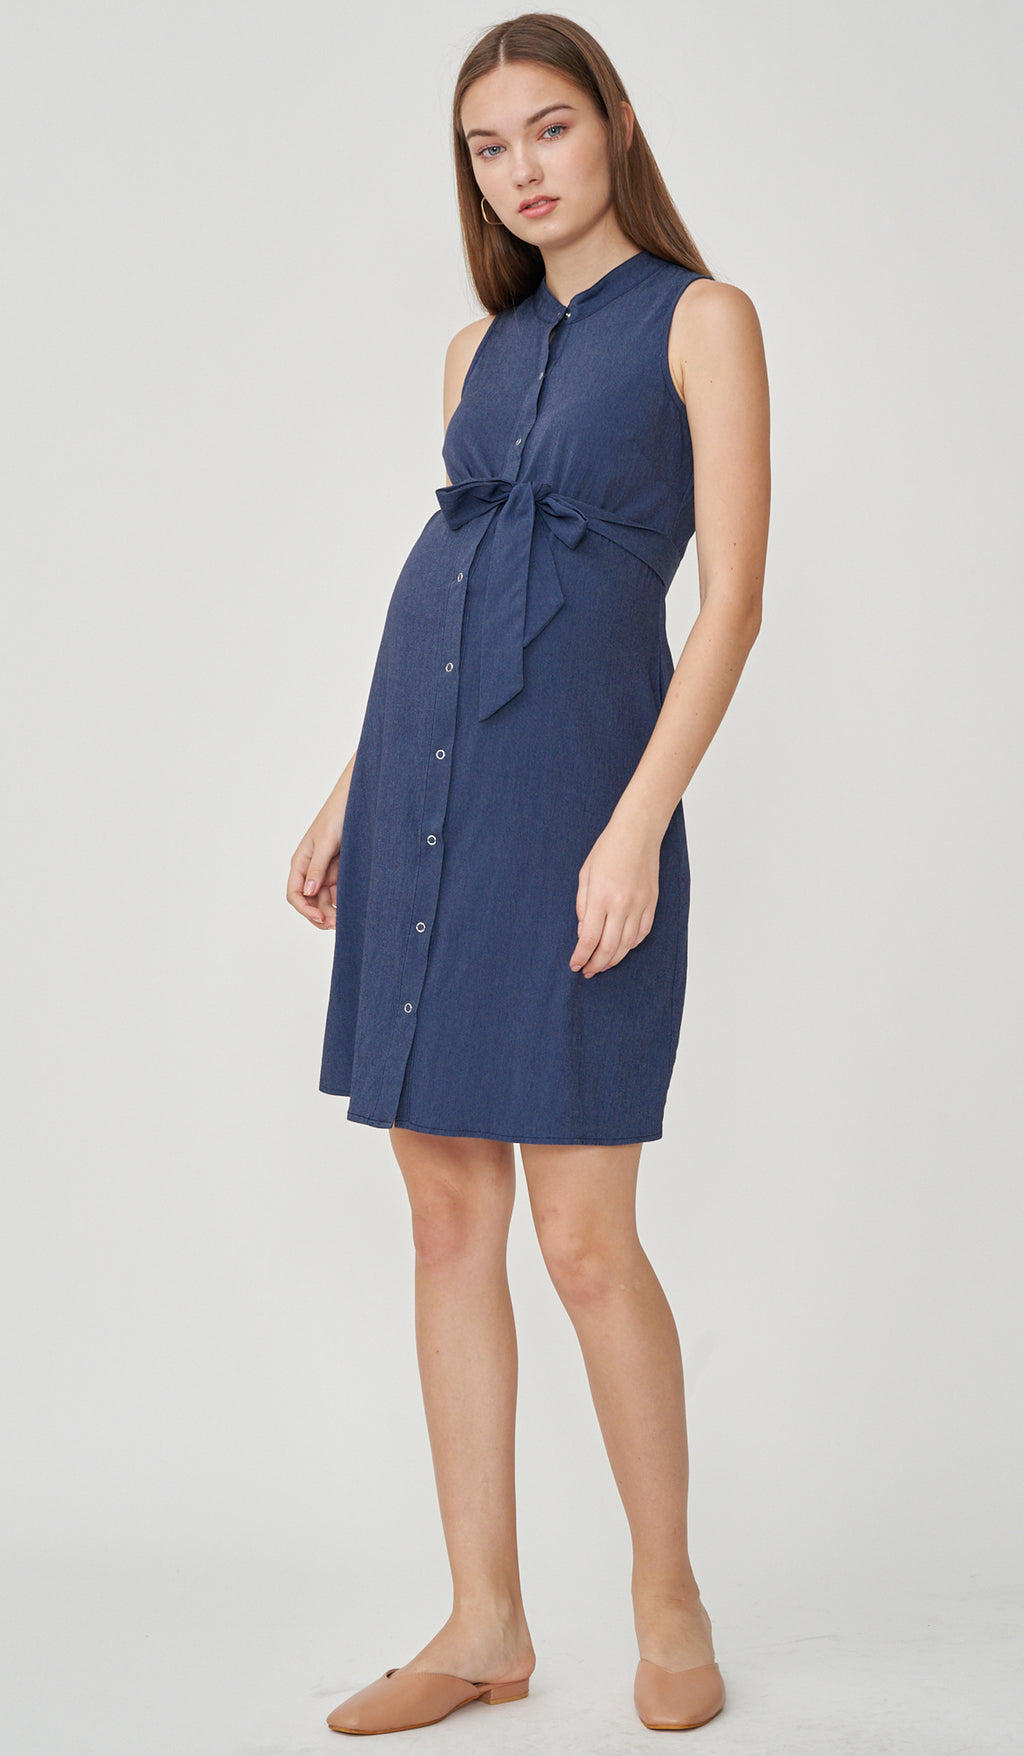 CALLIE DENIM WASH SHIRT DRESS W SASH